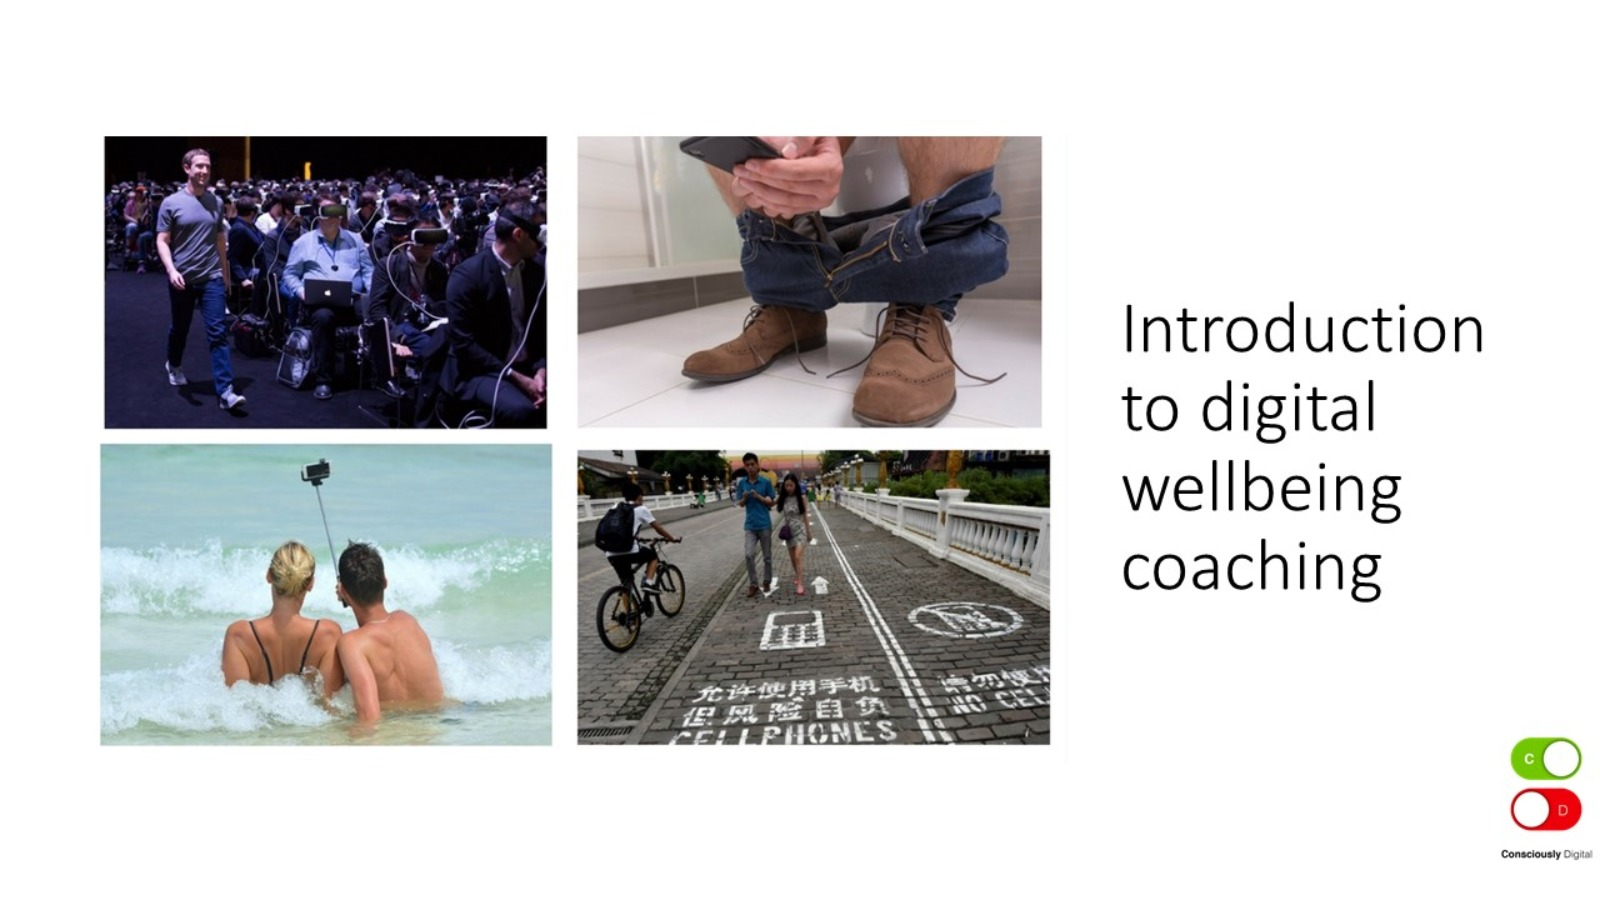 Introduction to digital wellbeing coaching kit